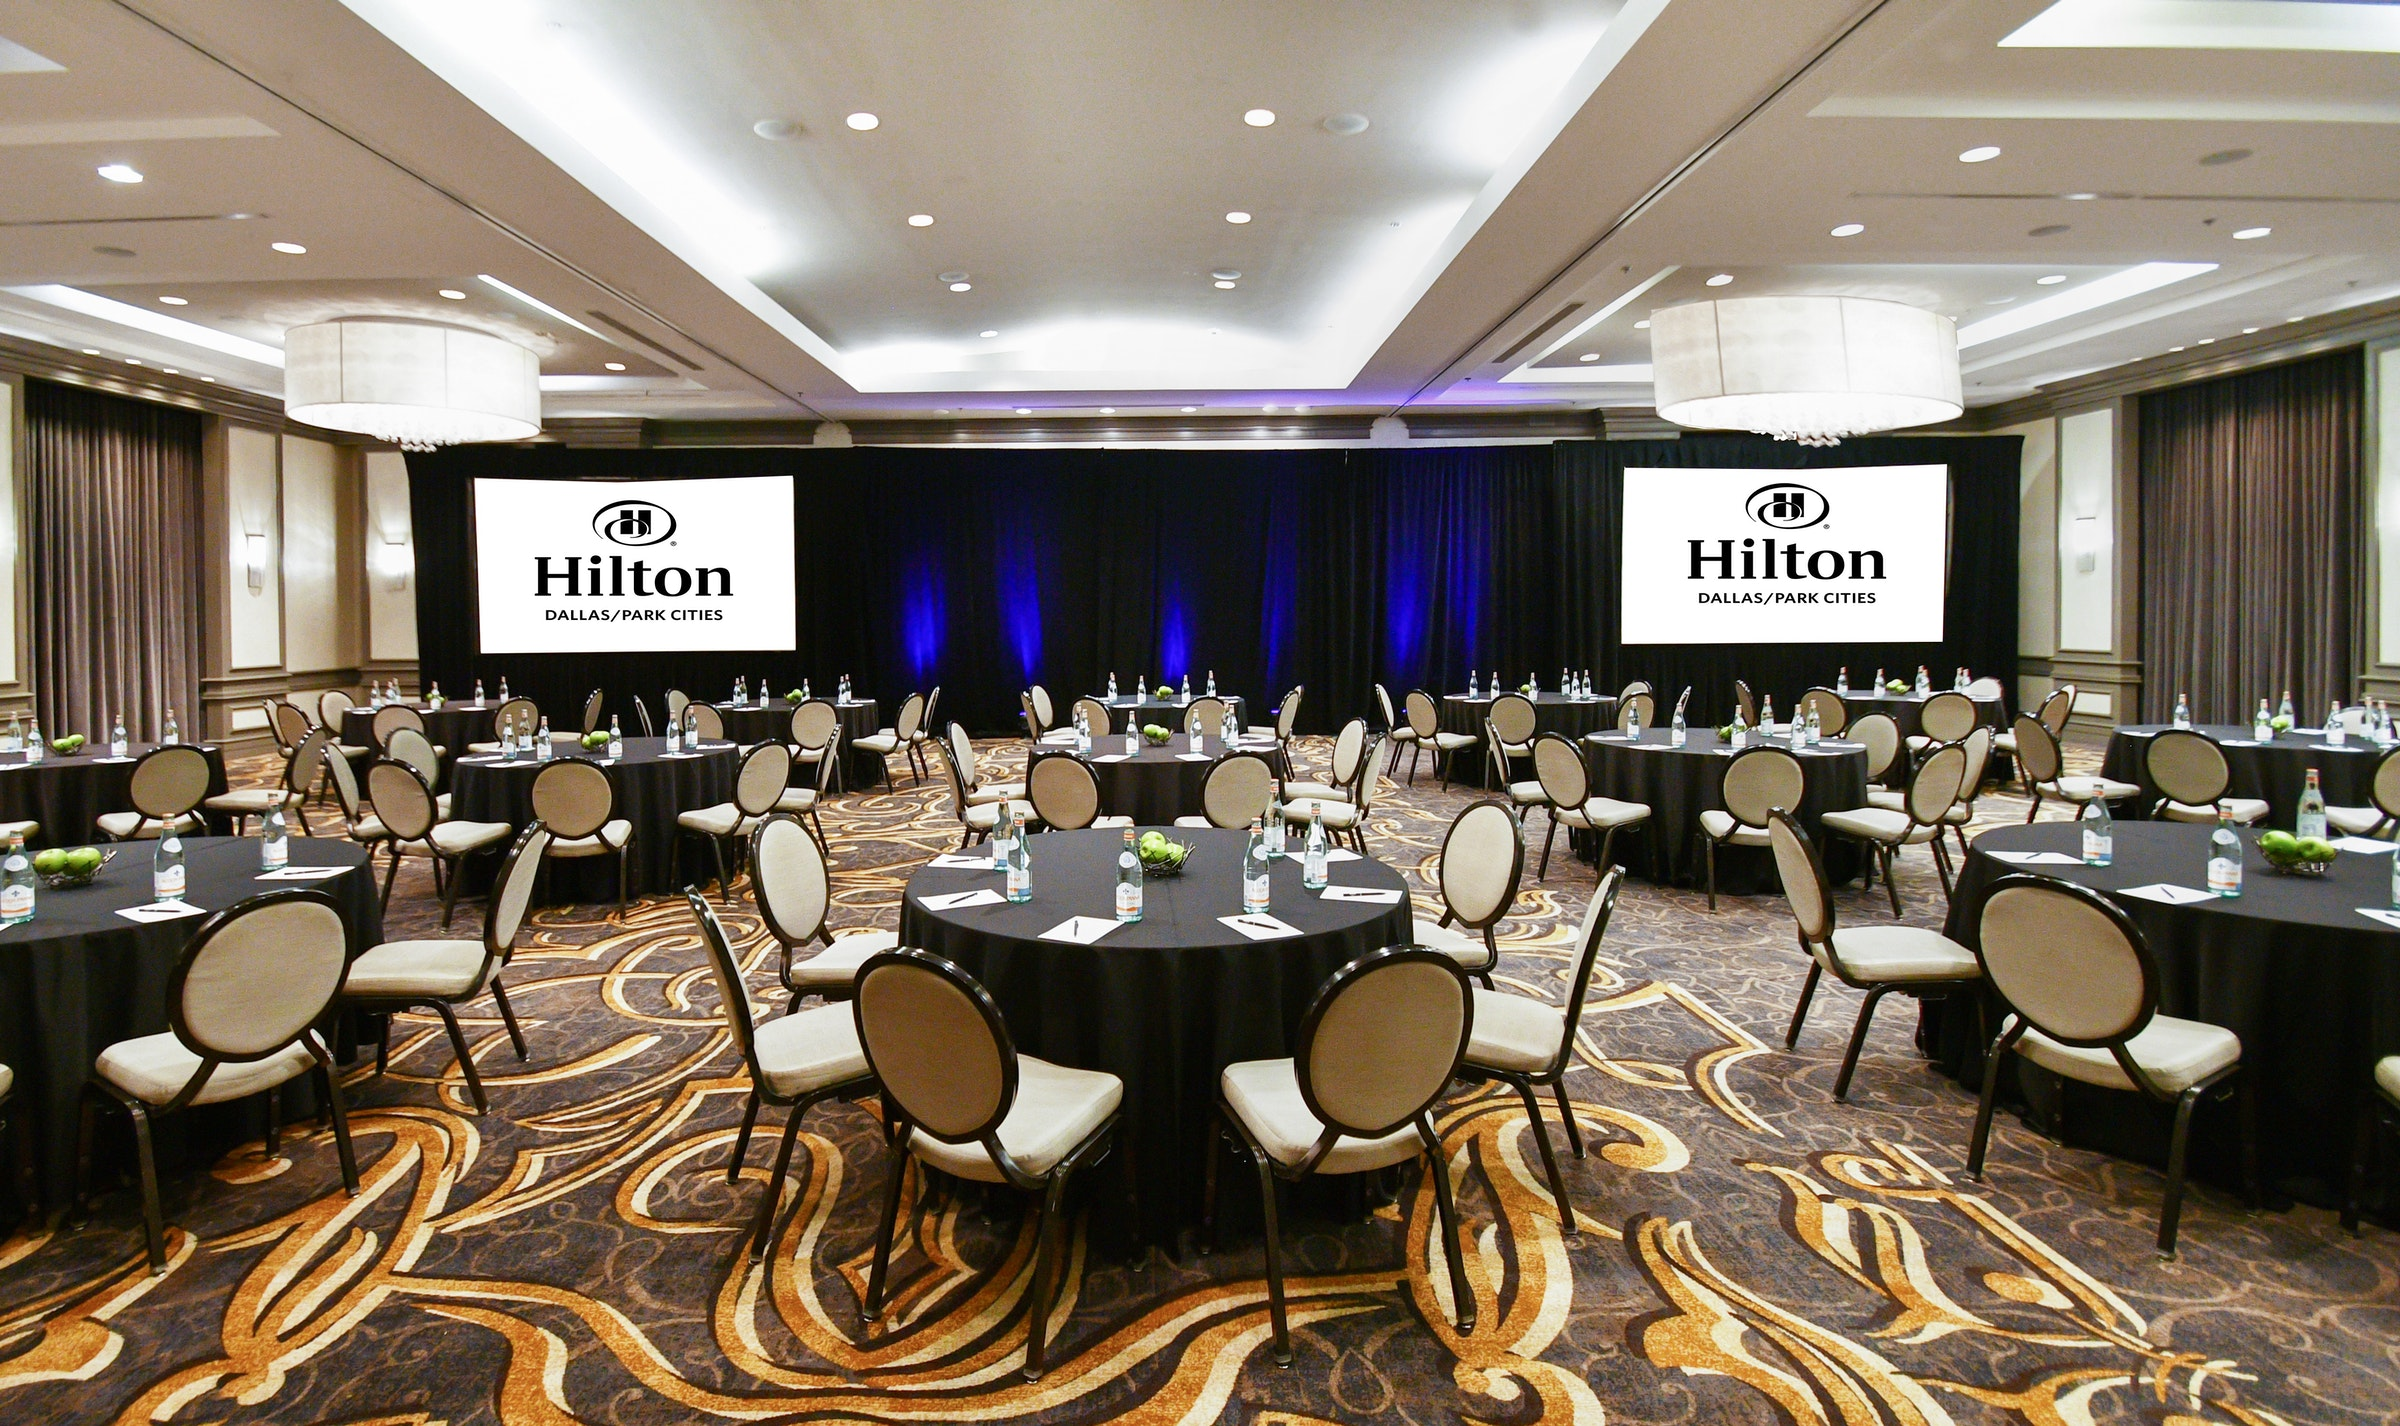 Hilton Dallas/Park Cities in Beyond Dallas